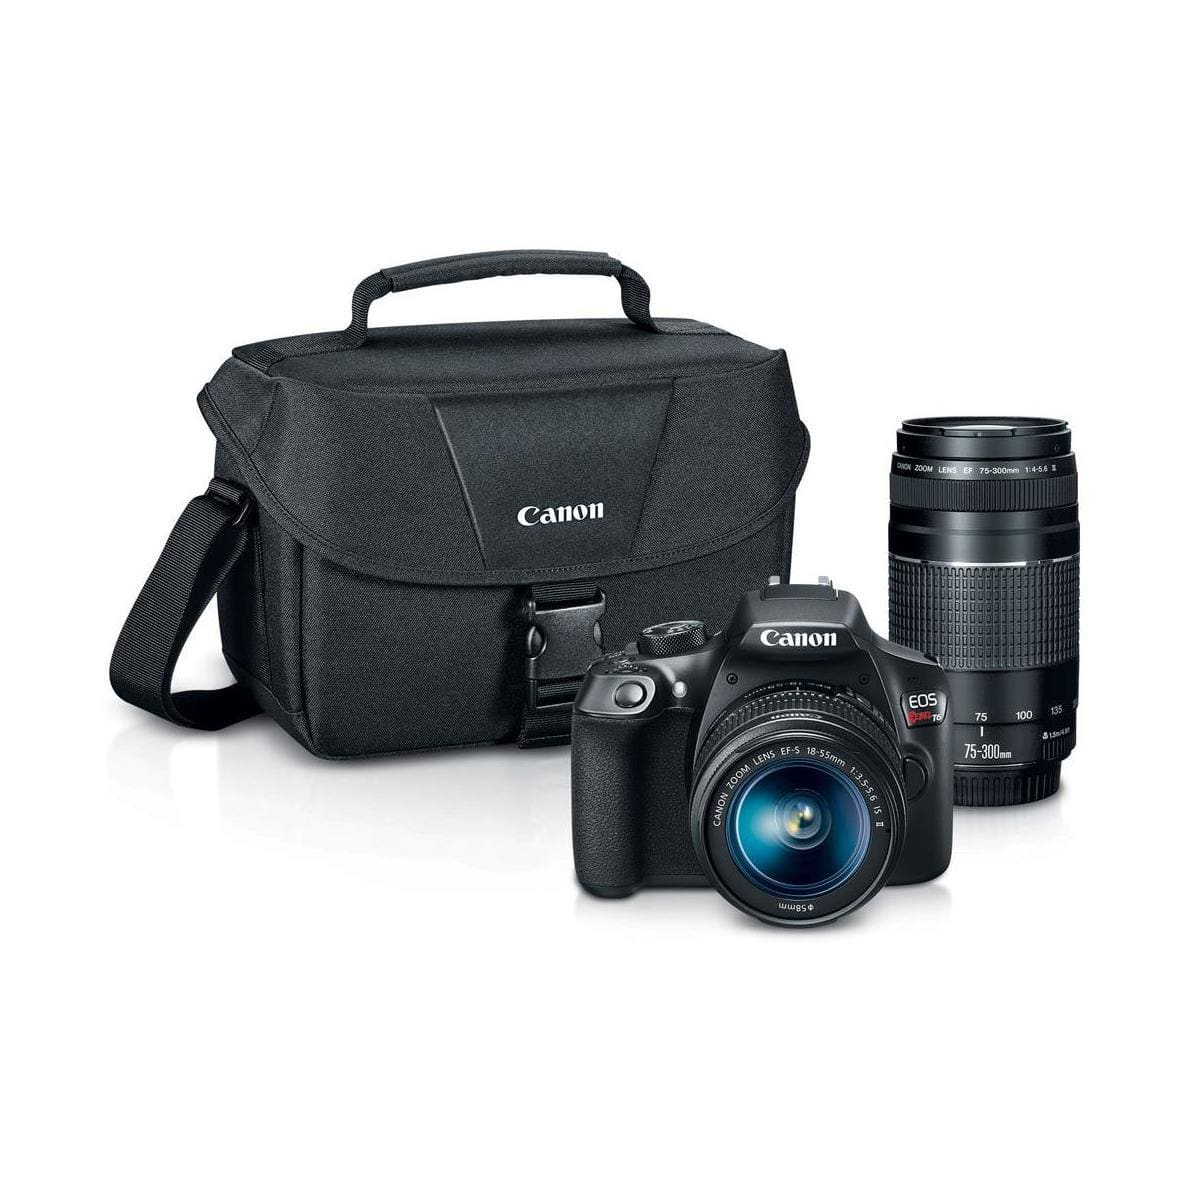 Canon EOS Rebel T6 DSLR Camera w/ 18-55mm & 75-300mm Lenses + Pro-100 Printer & More $349 after $350 Rebate + Free S&H